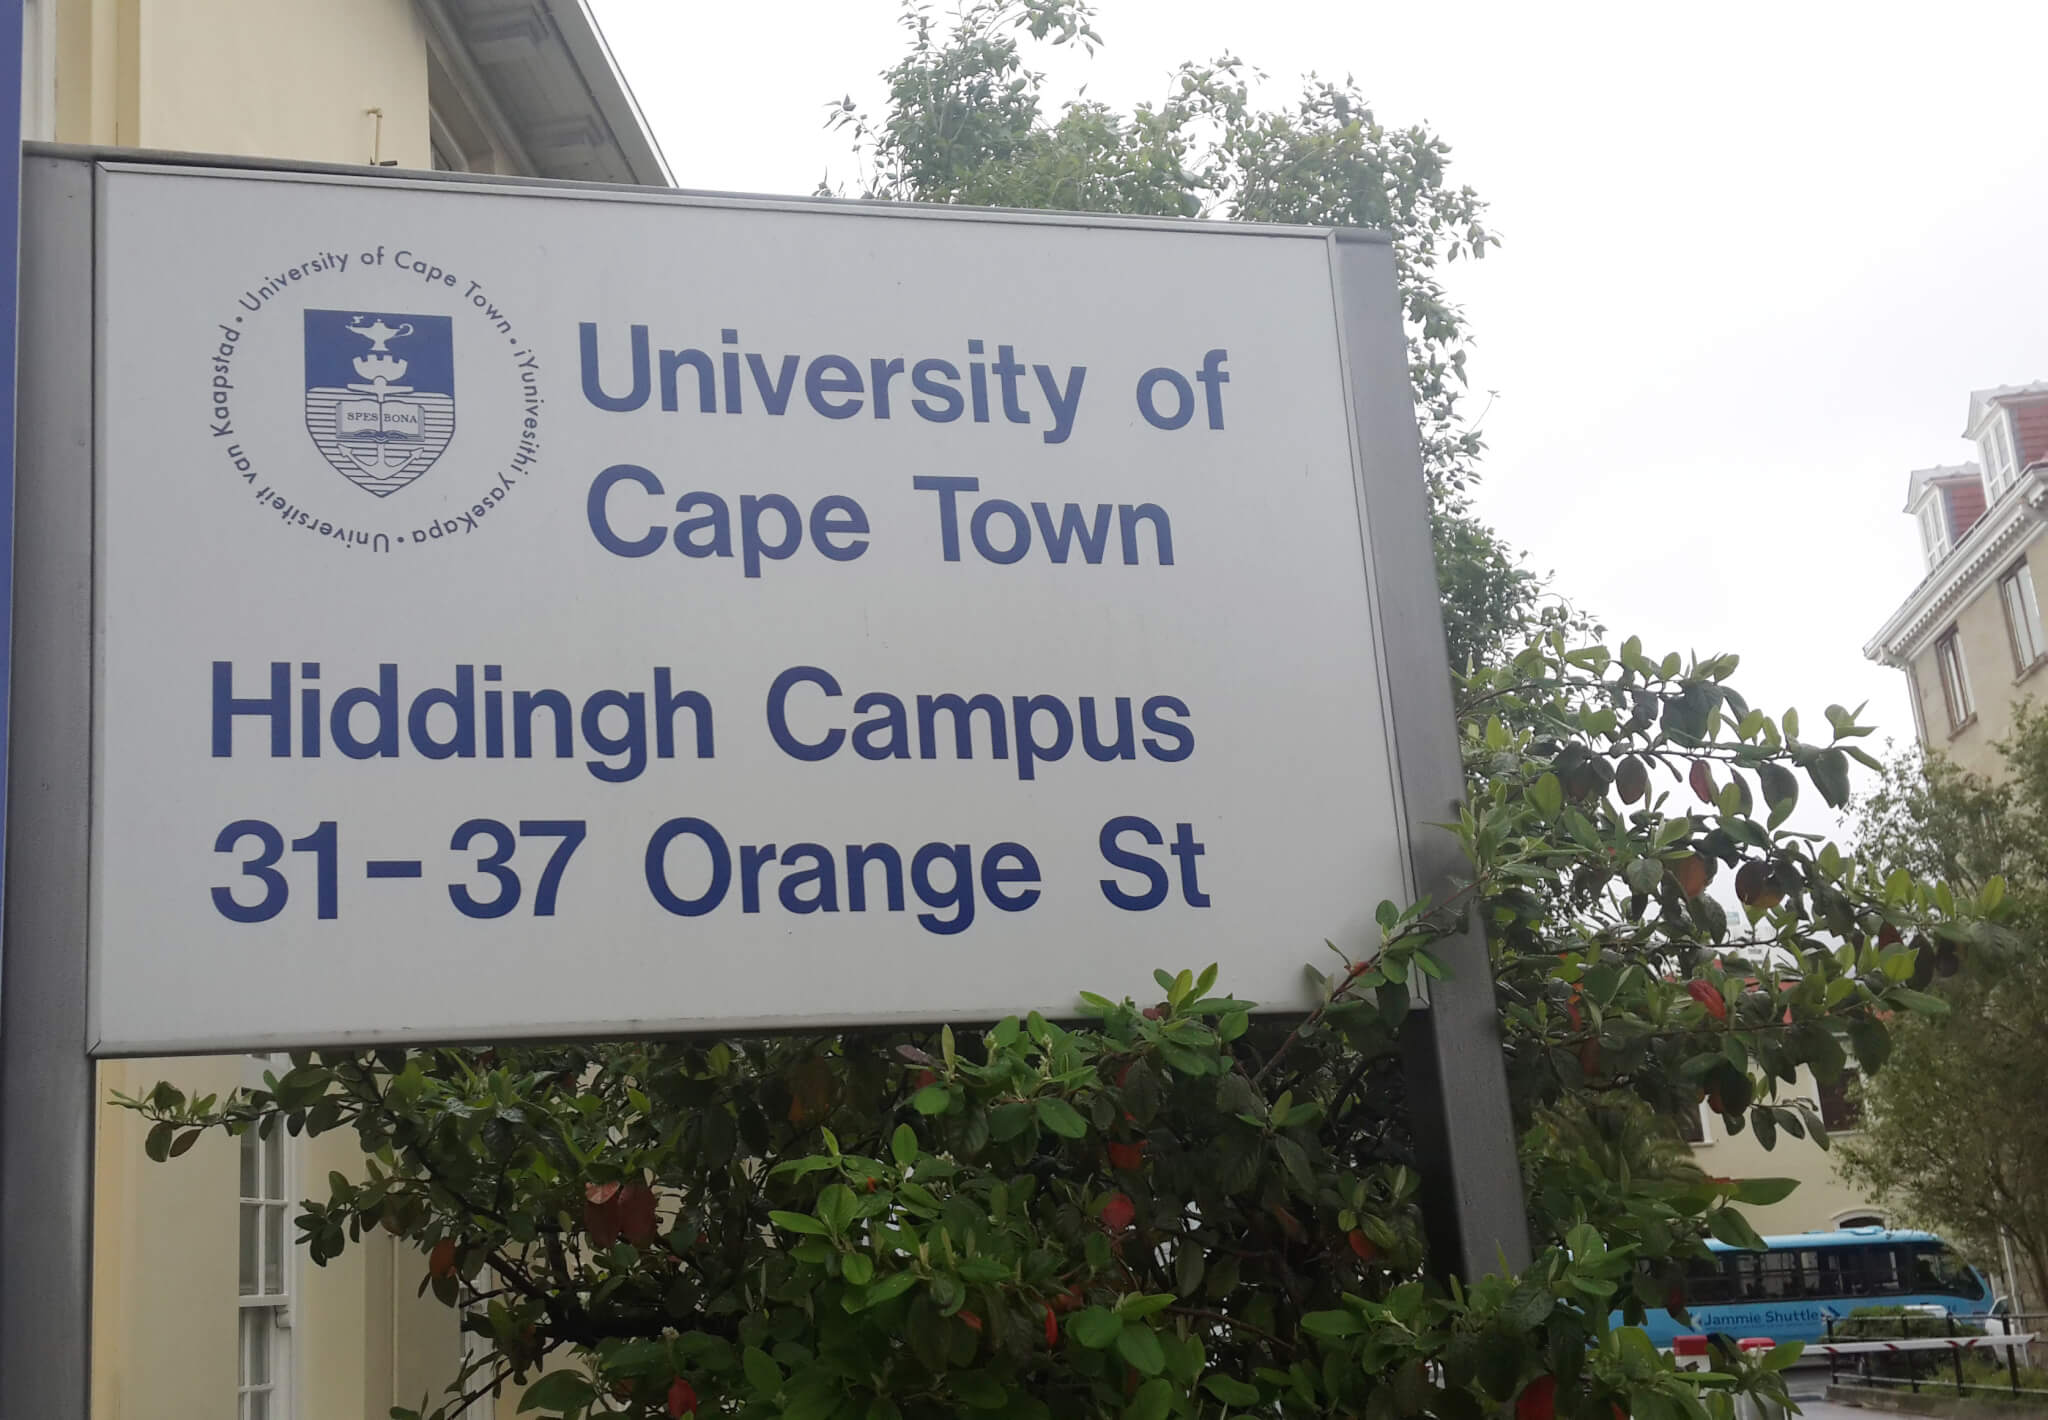 University of Cape Town ELC on Hiddingh Campus